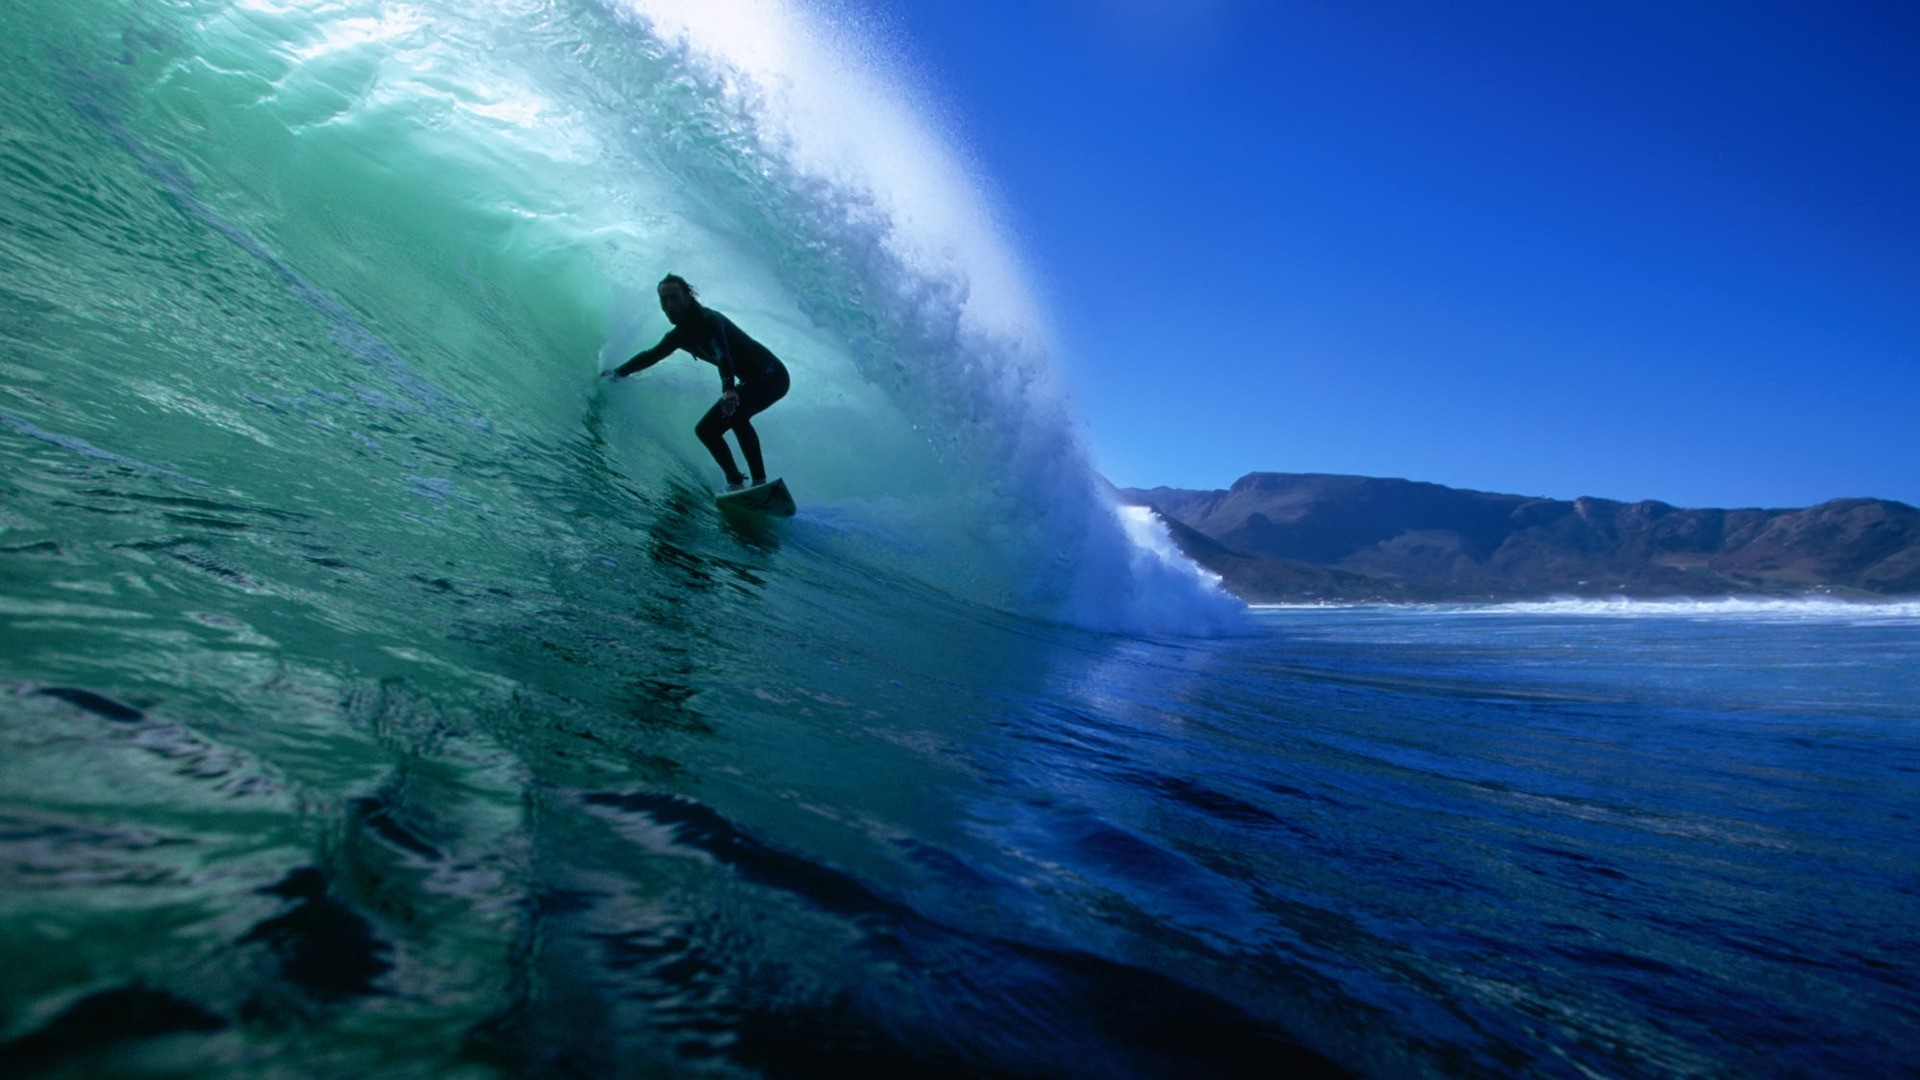 Wallpapers Surf Girl Surfing Roxy 1920×1080